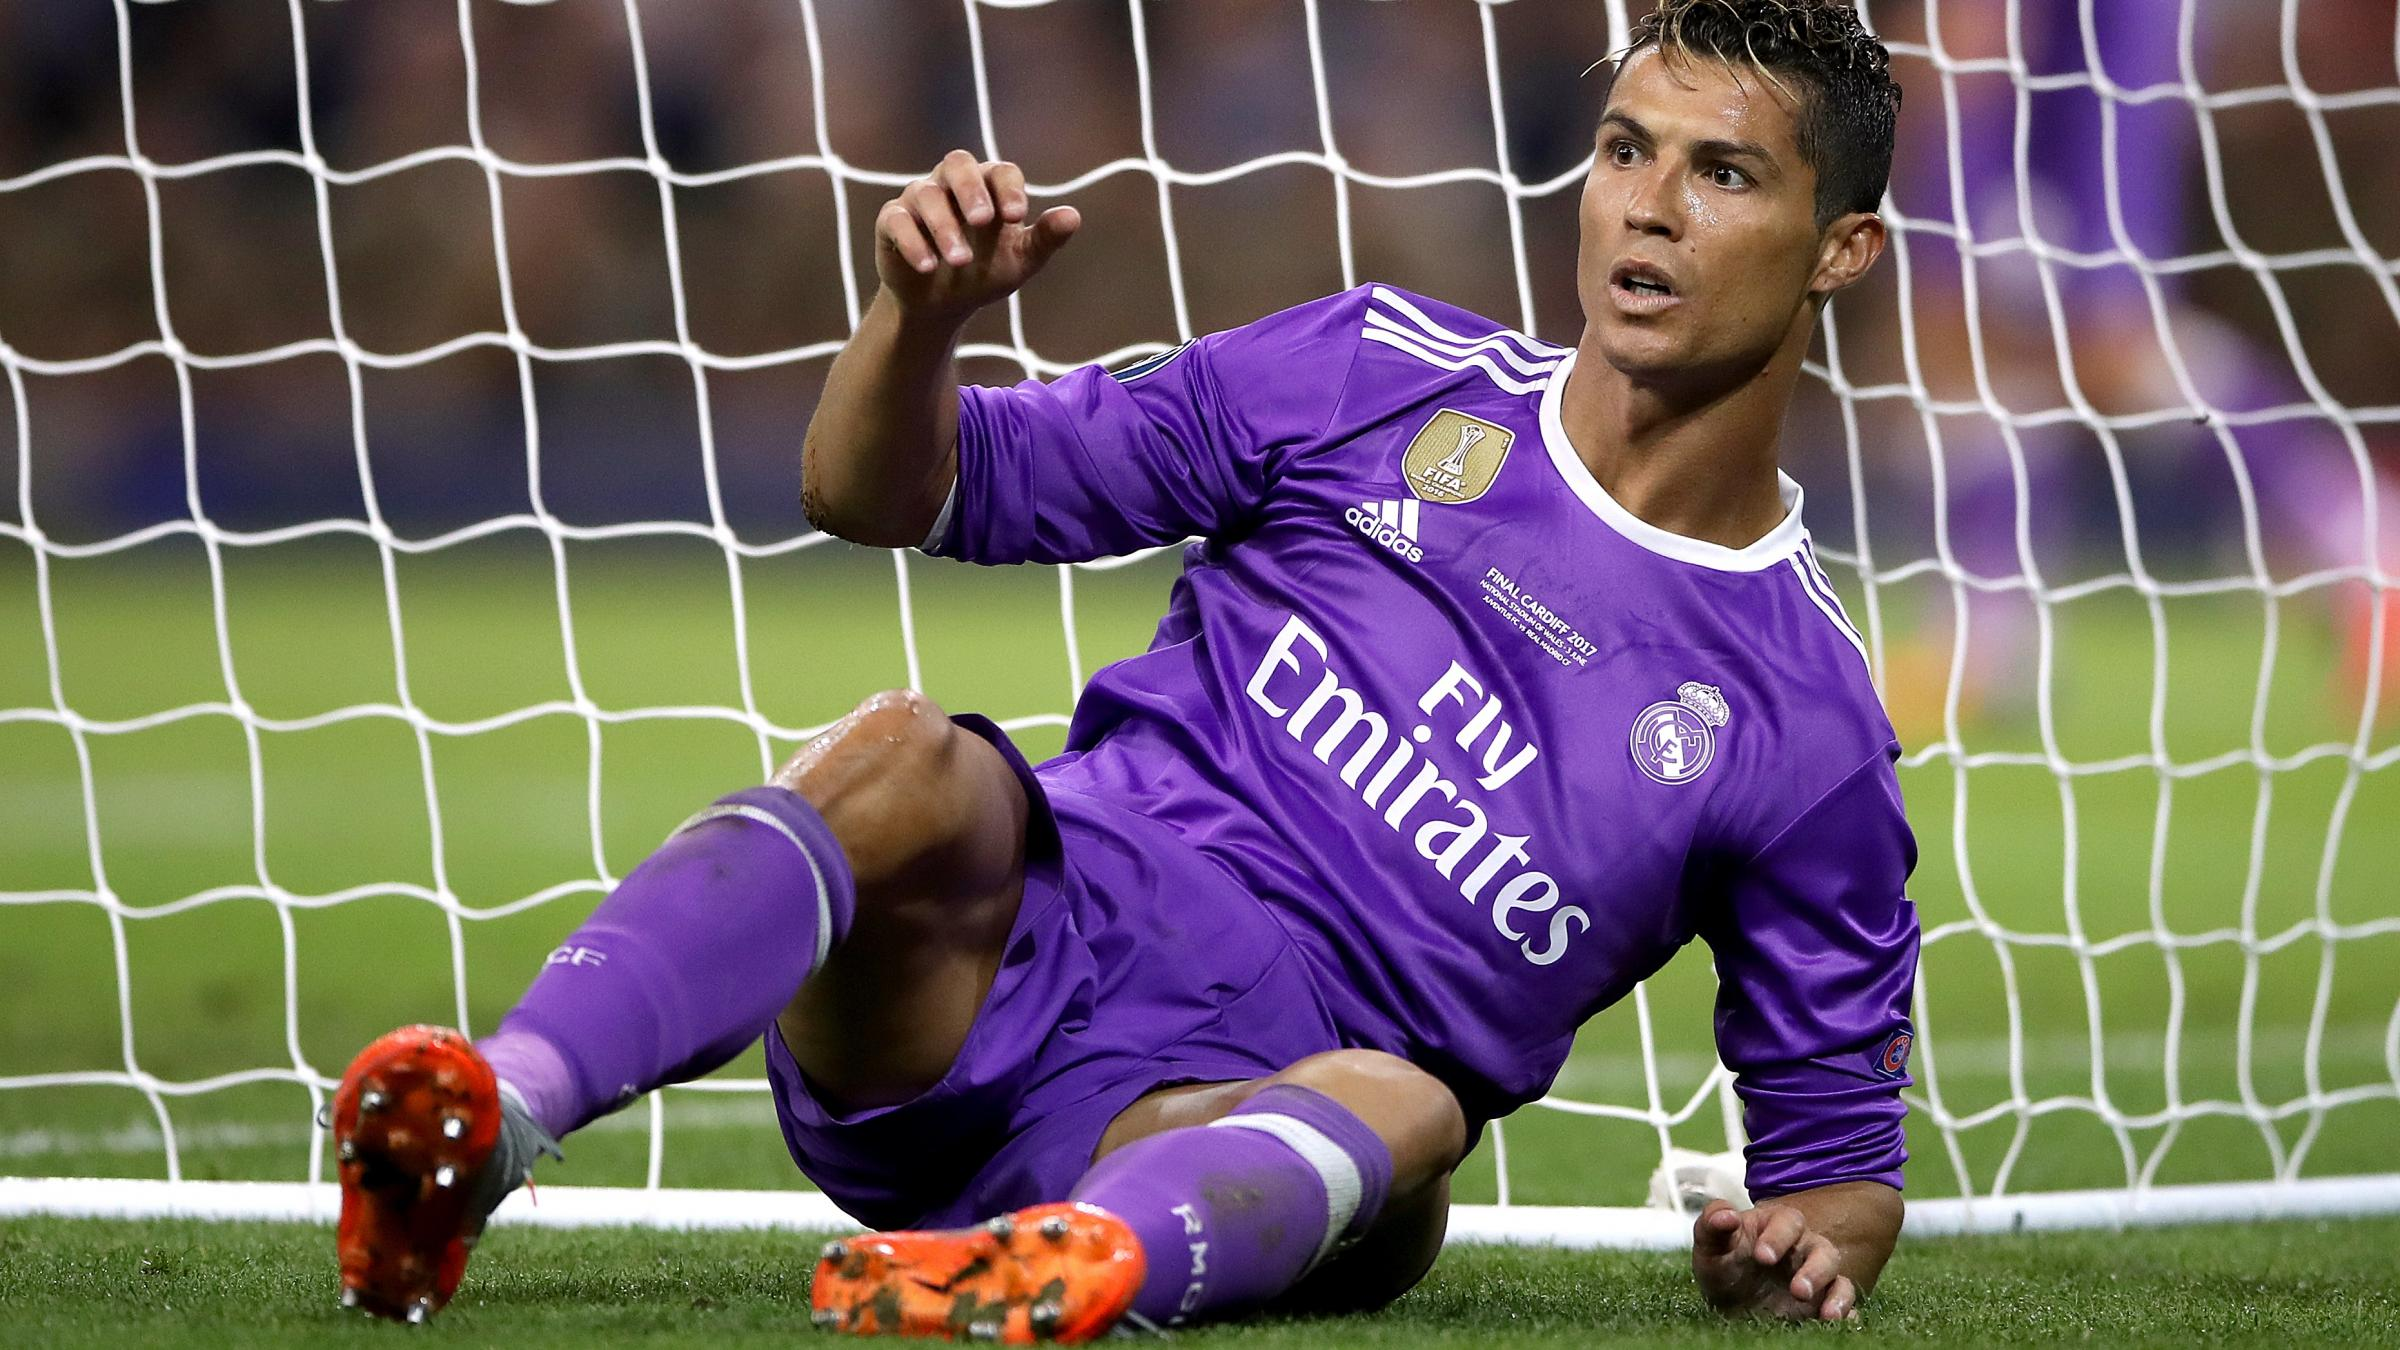 Real Madrid's Cristiano Ronaldo accused of $16.4m tax evasion